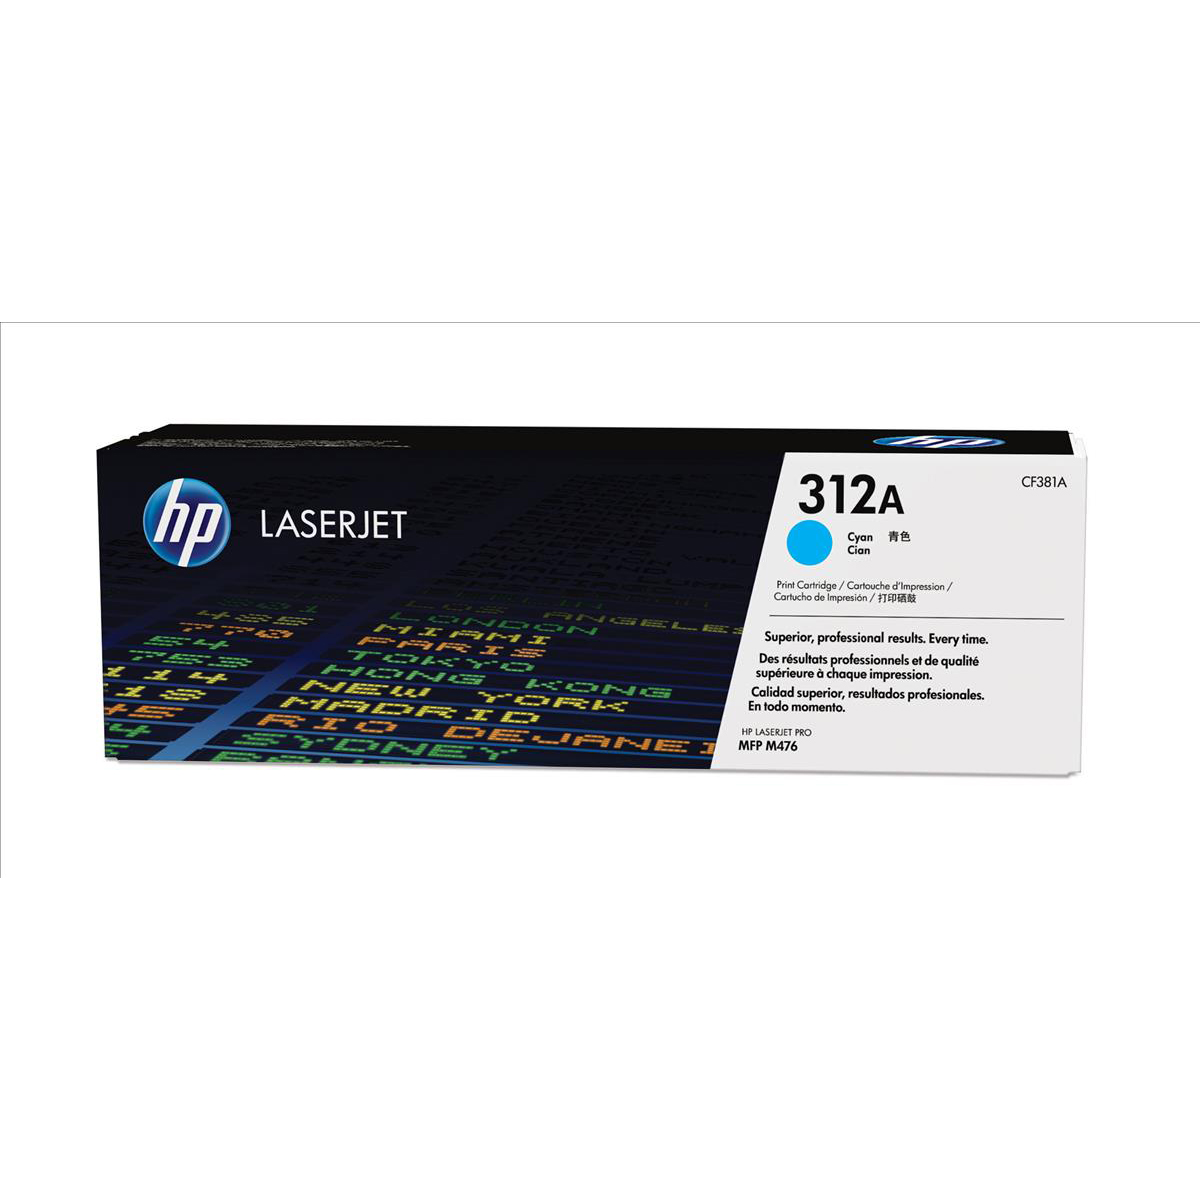 HP 312A Laser Toner Cartridge Page Life 2700pp Cyan Ref CF381A